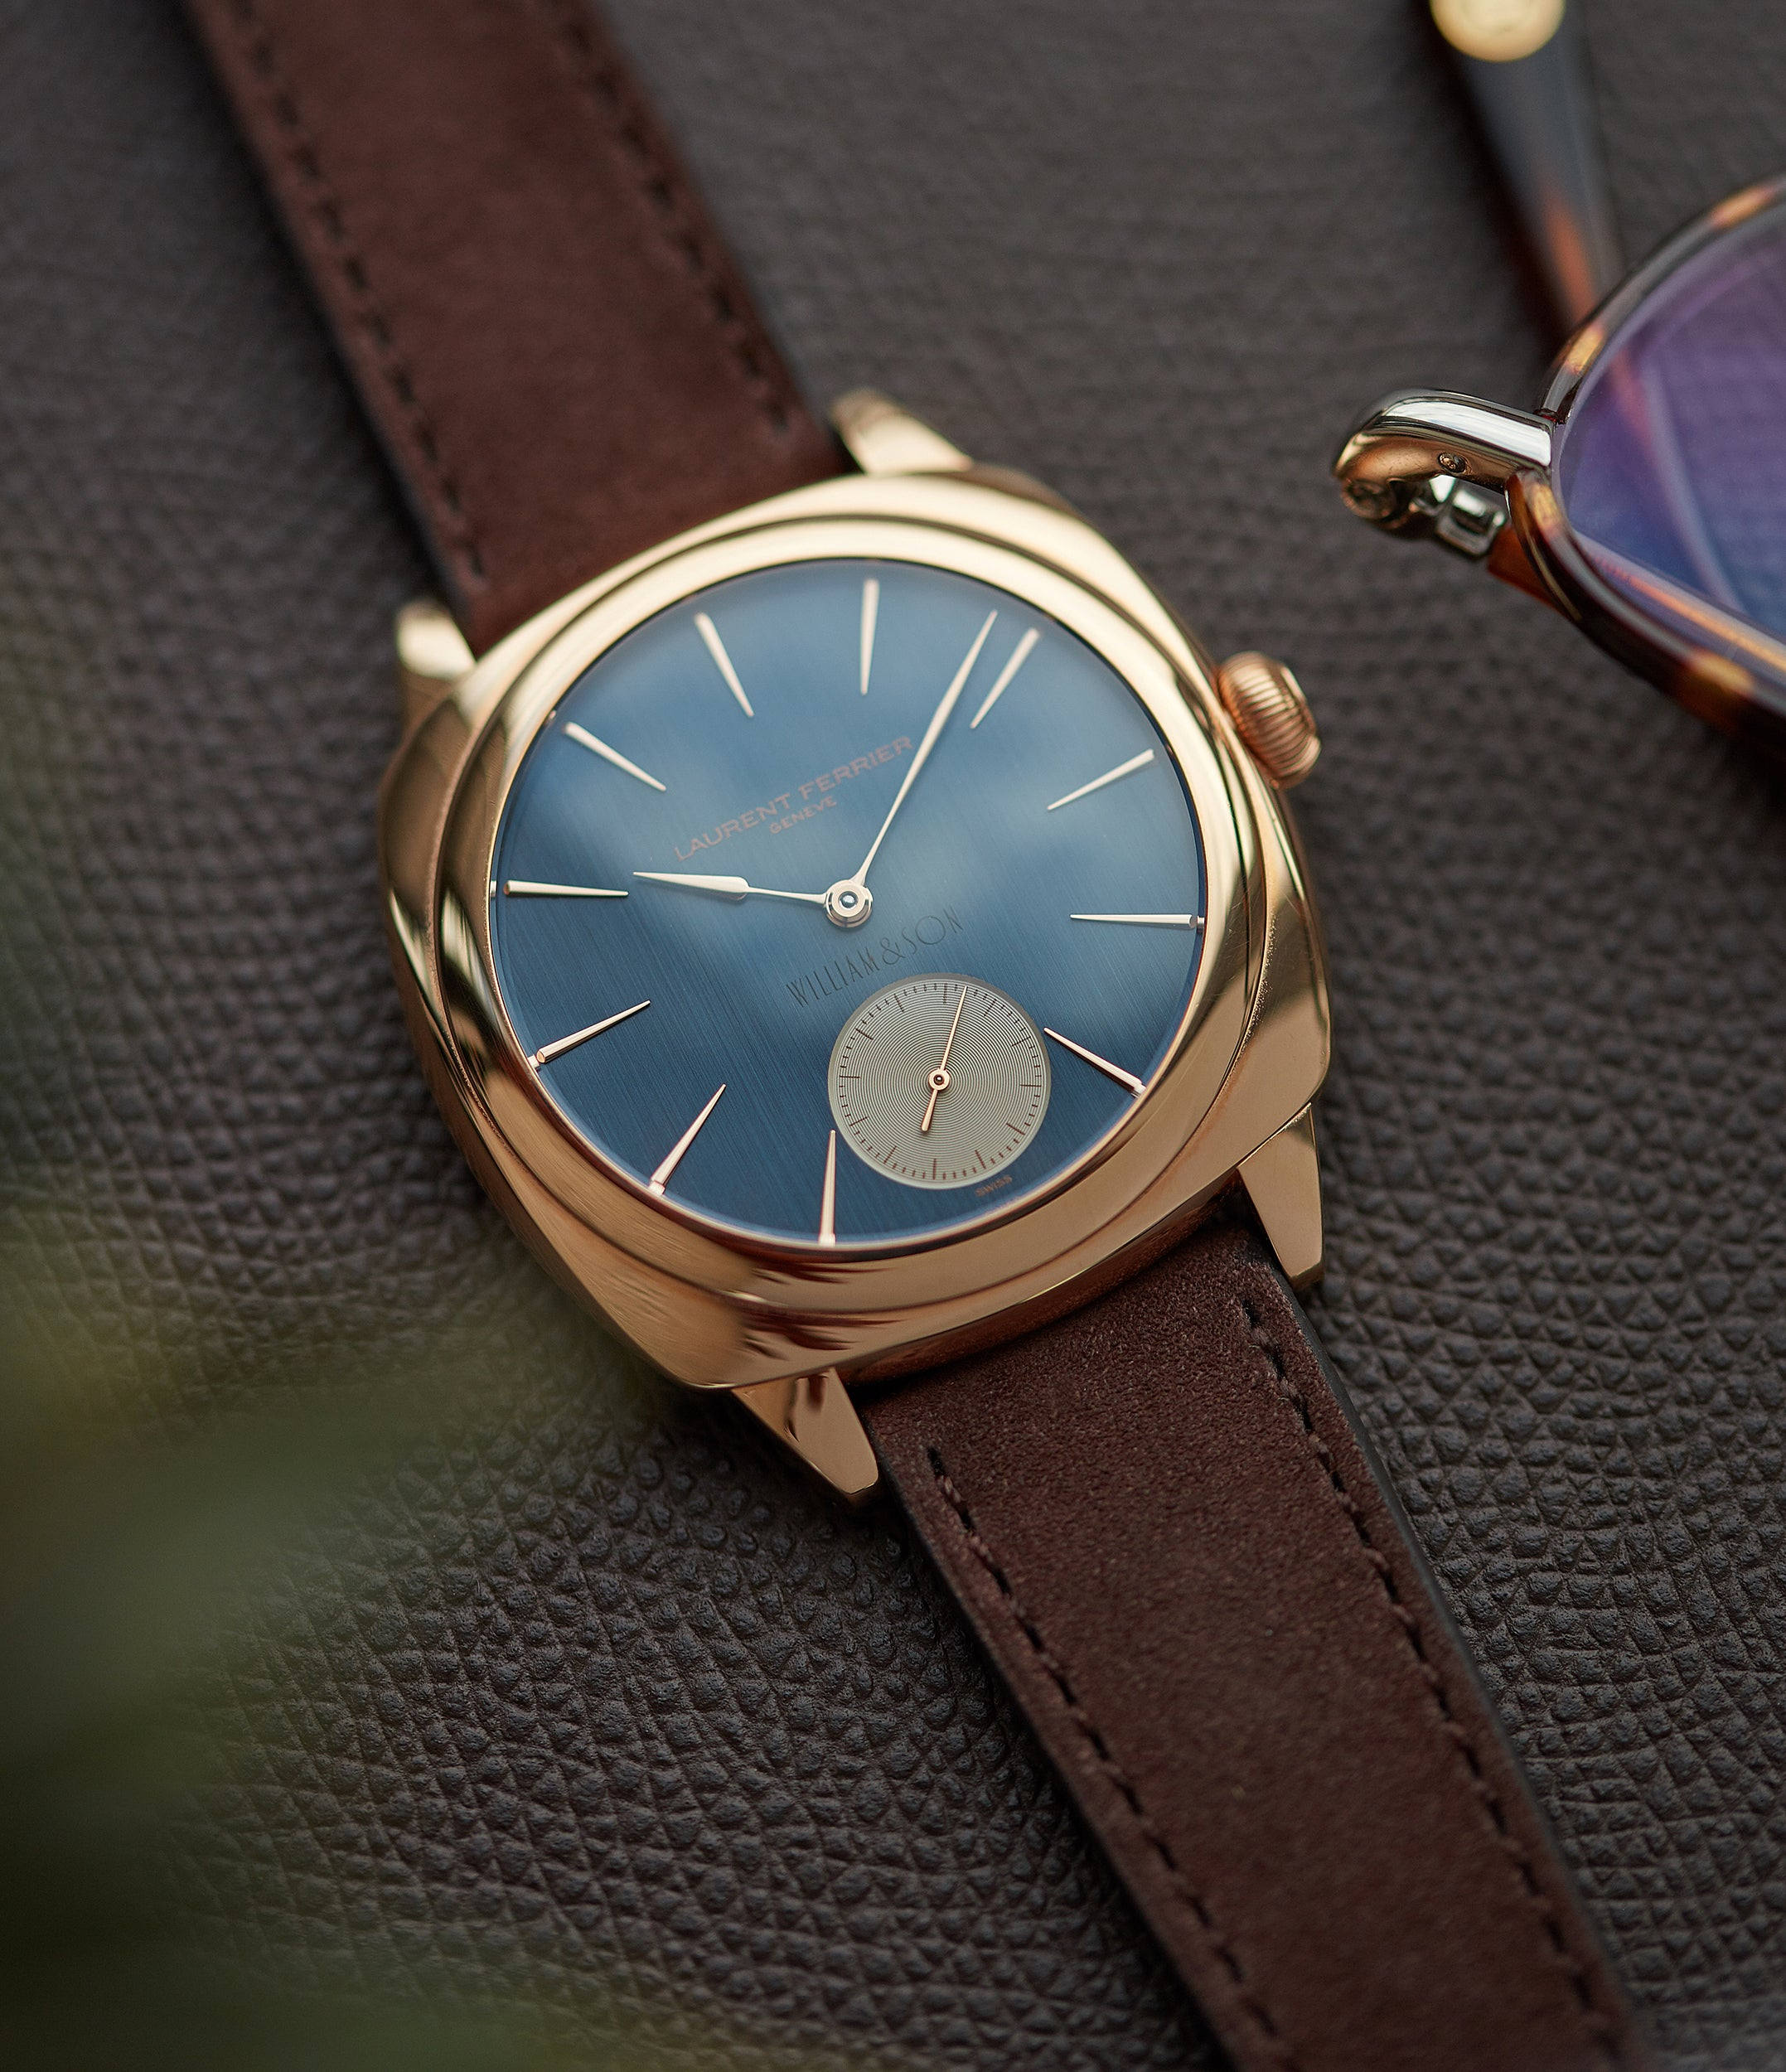 independent watchmaker Laurent Ferrier Galet Square Micro-rotor blue dial by  William & Son rose gold rare luxury dress watch for sale online at A Collected Man London UK specialist and approved reseller of rare independent watchmakers